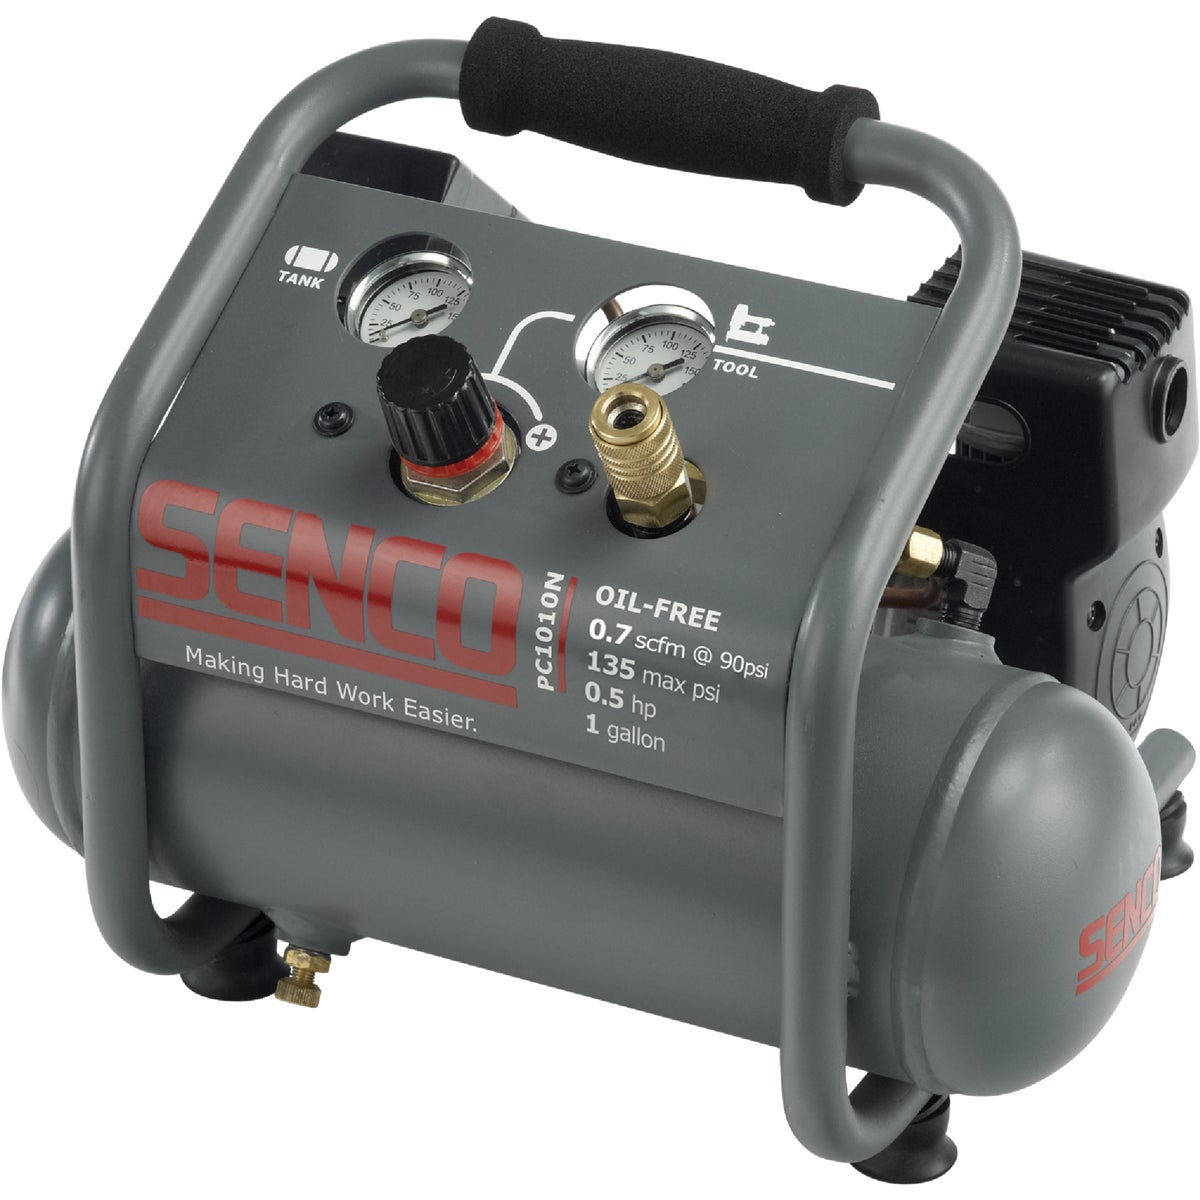 1 GAL AIR COMPRESSOR - PC1010N by Senco Brands